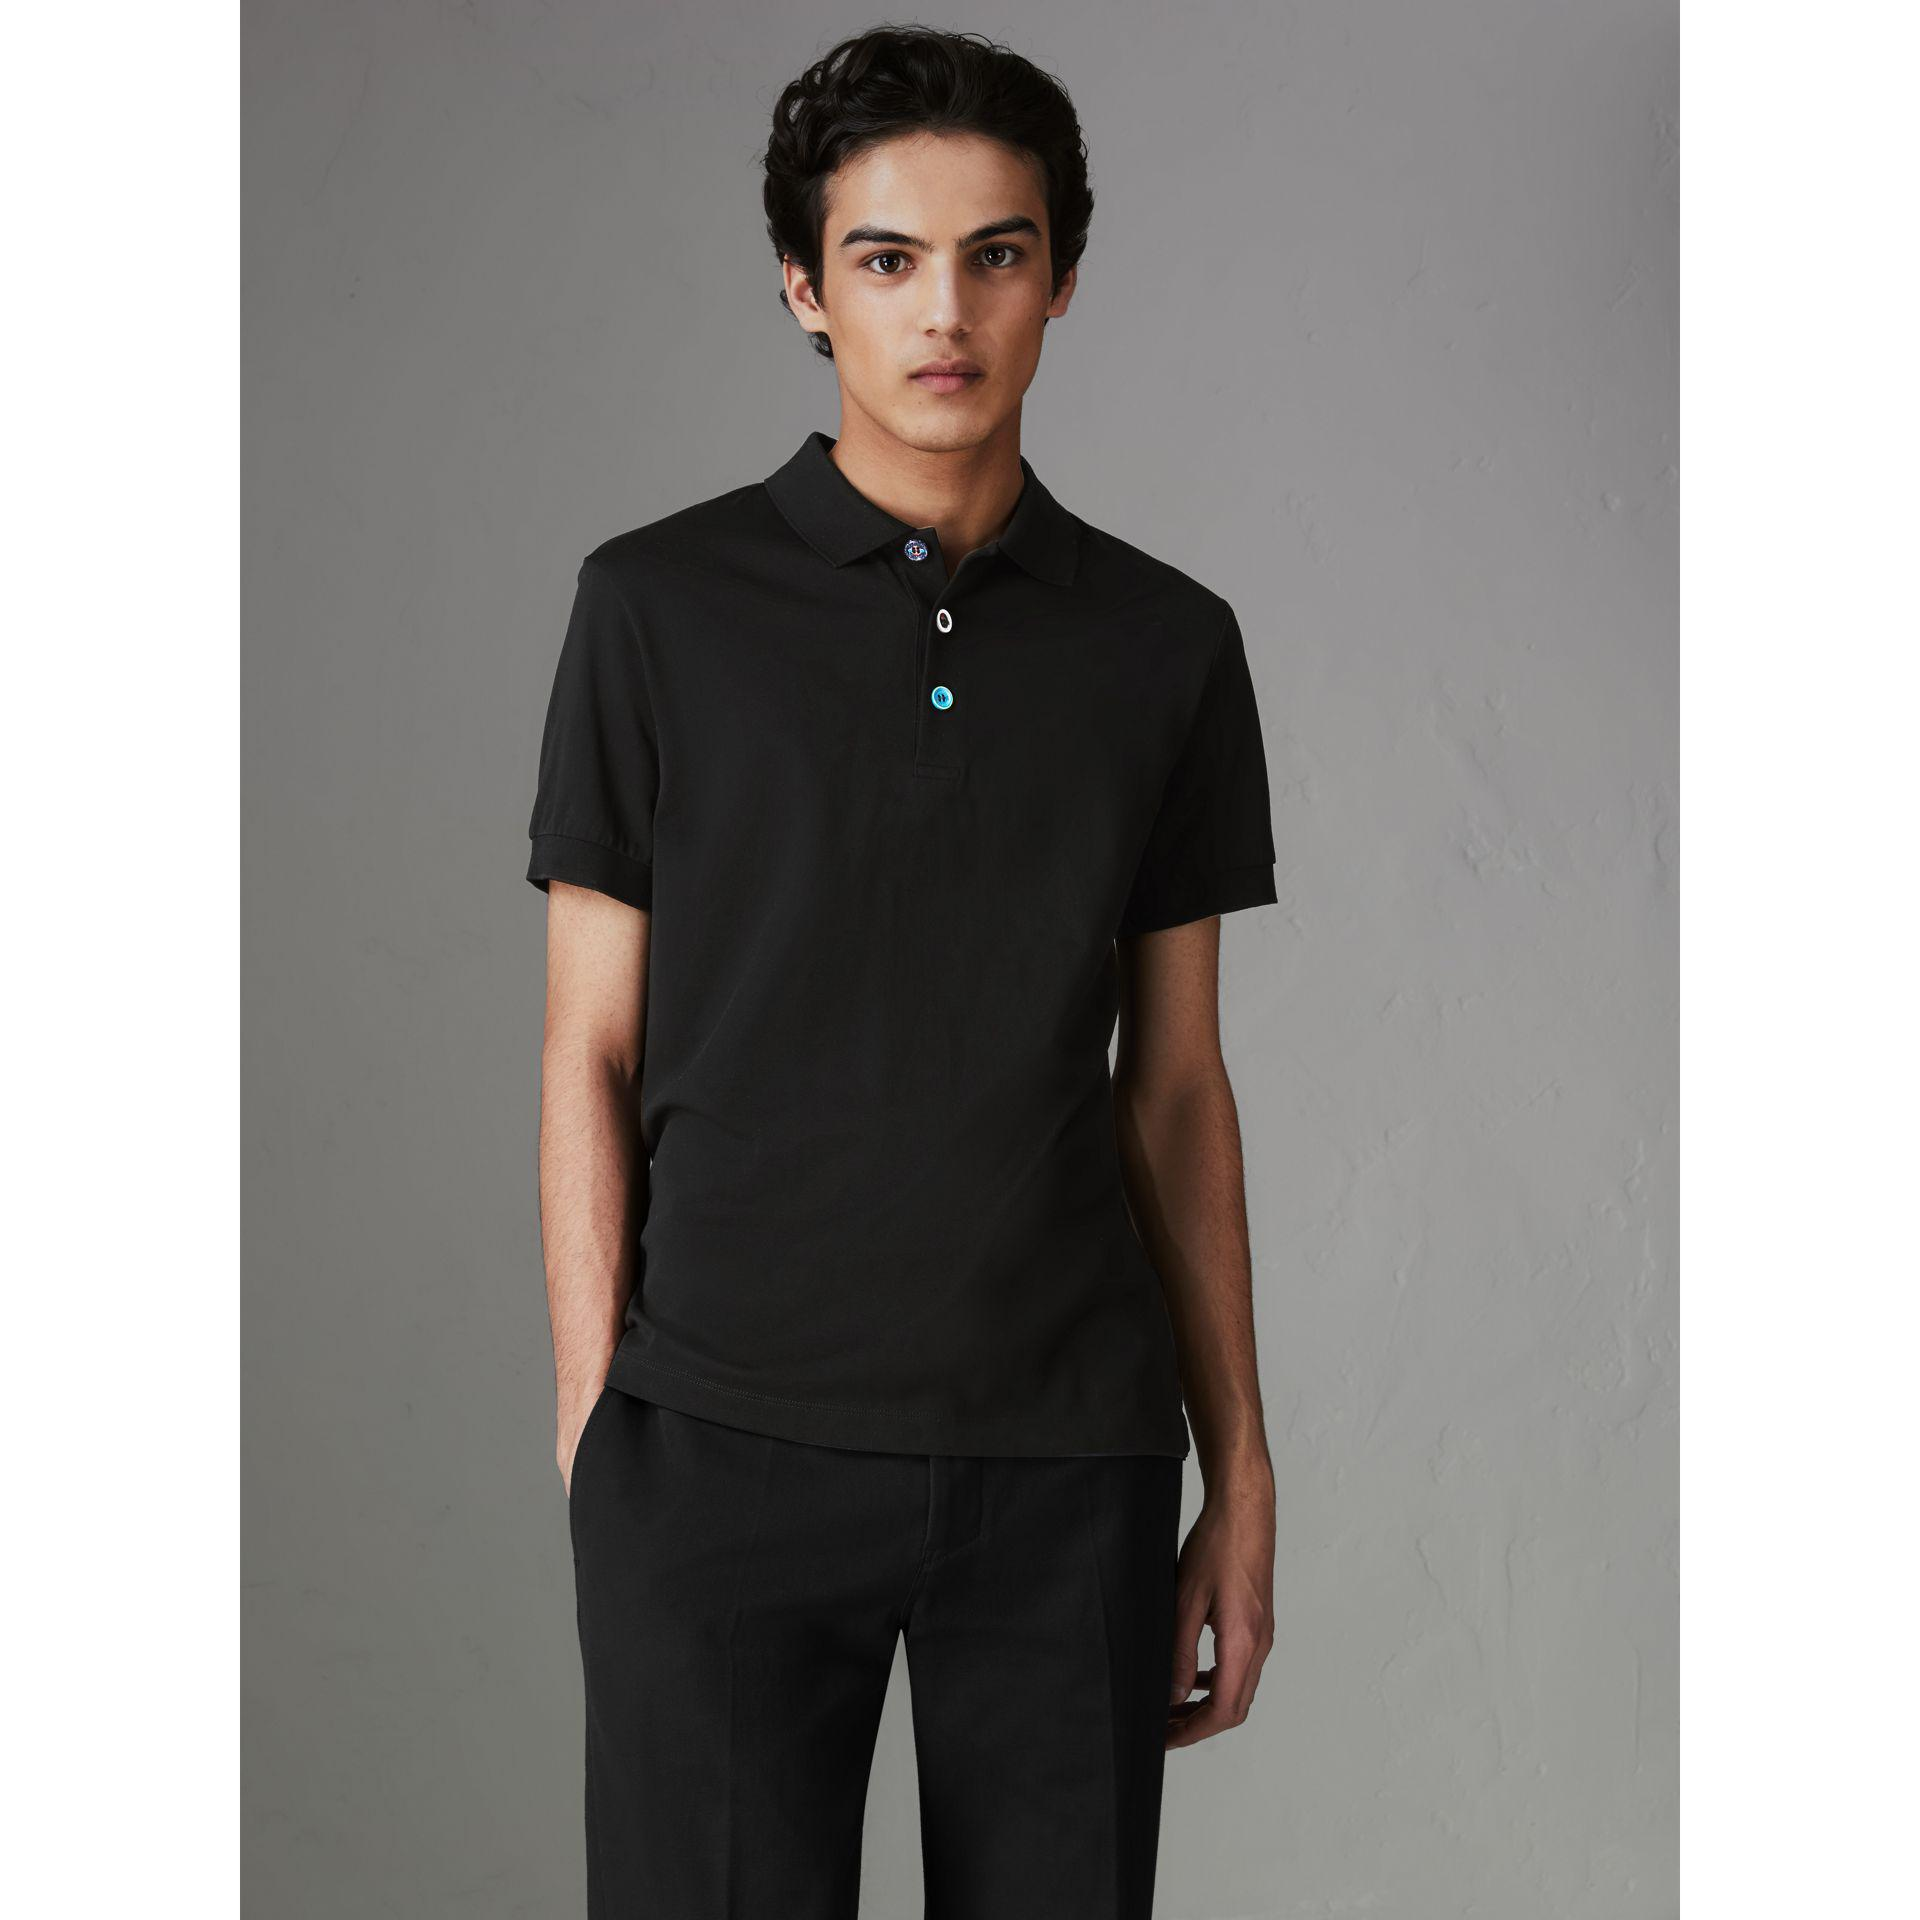 c29f6504accc2 Burberry Painted Button Cotton Piqué Polo Shirt in Black for Men - Lyst